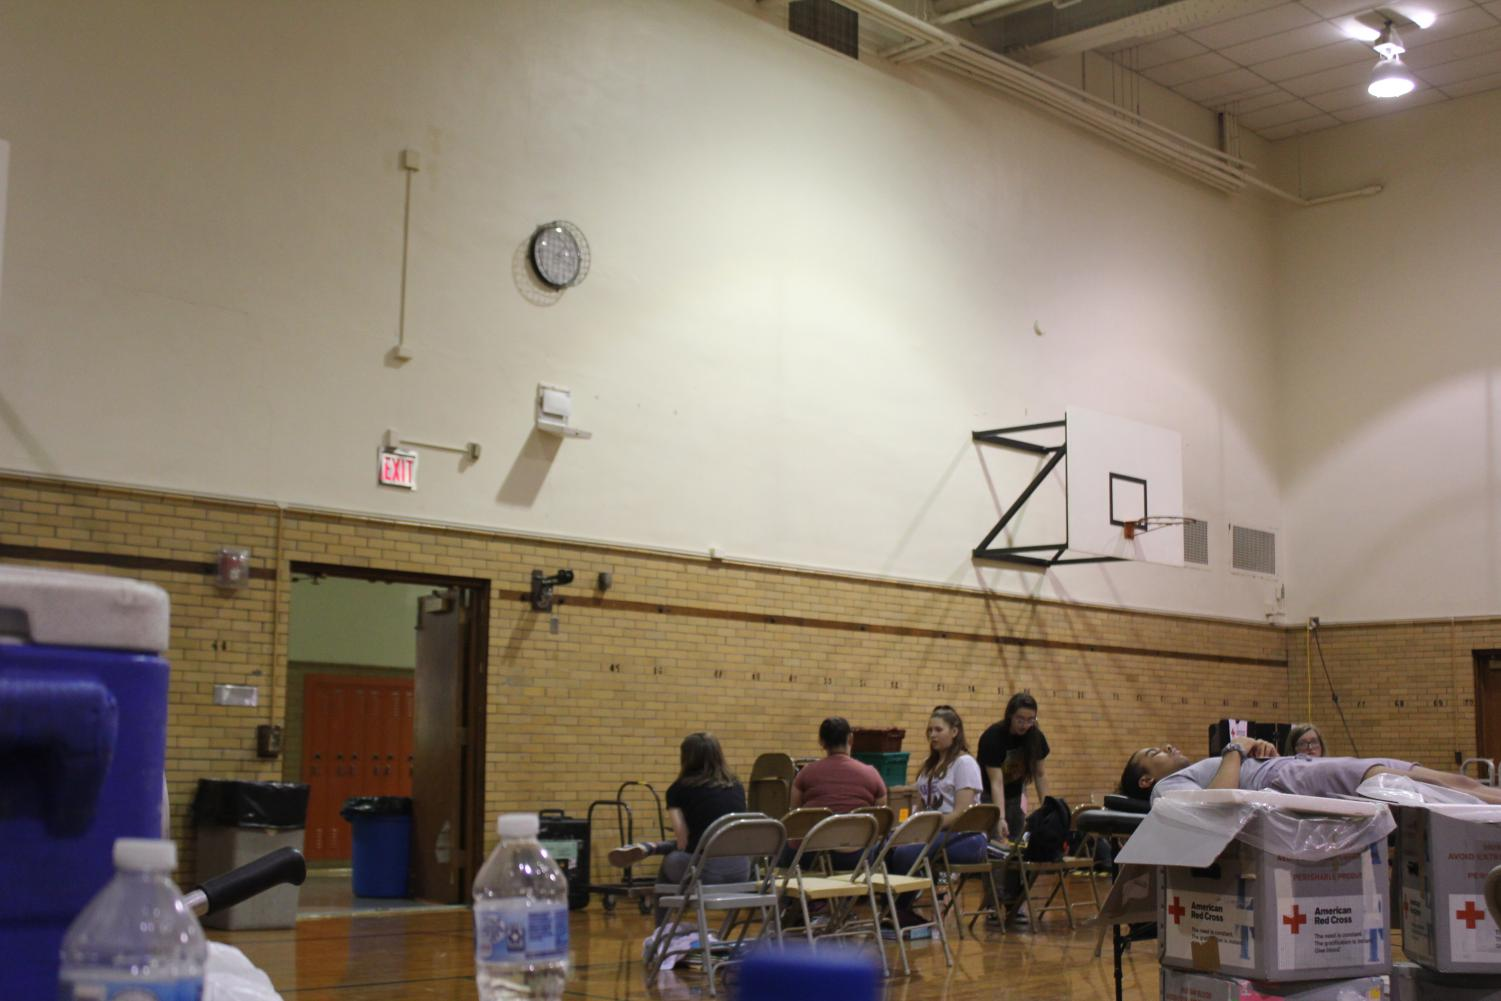 Waiting+For+The+Donation%21+Students+sat+in+the+chairs+right+at+the+entrance+of+the+auxiliary+gym+to+wait+for+their+turns+to+donate+blood.+